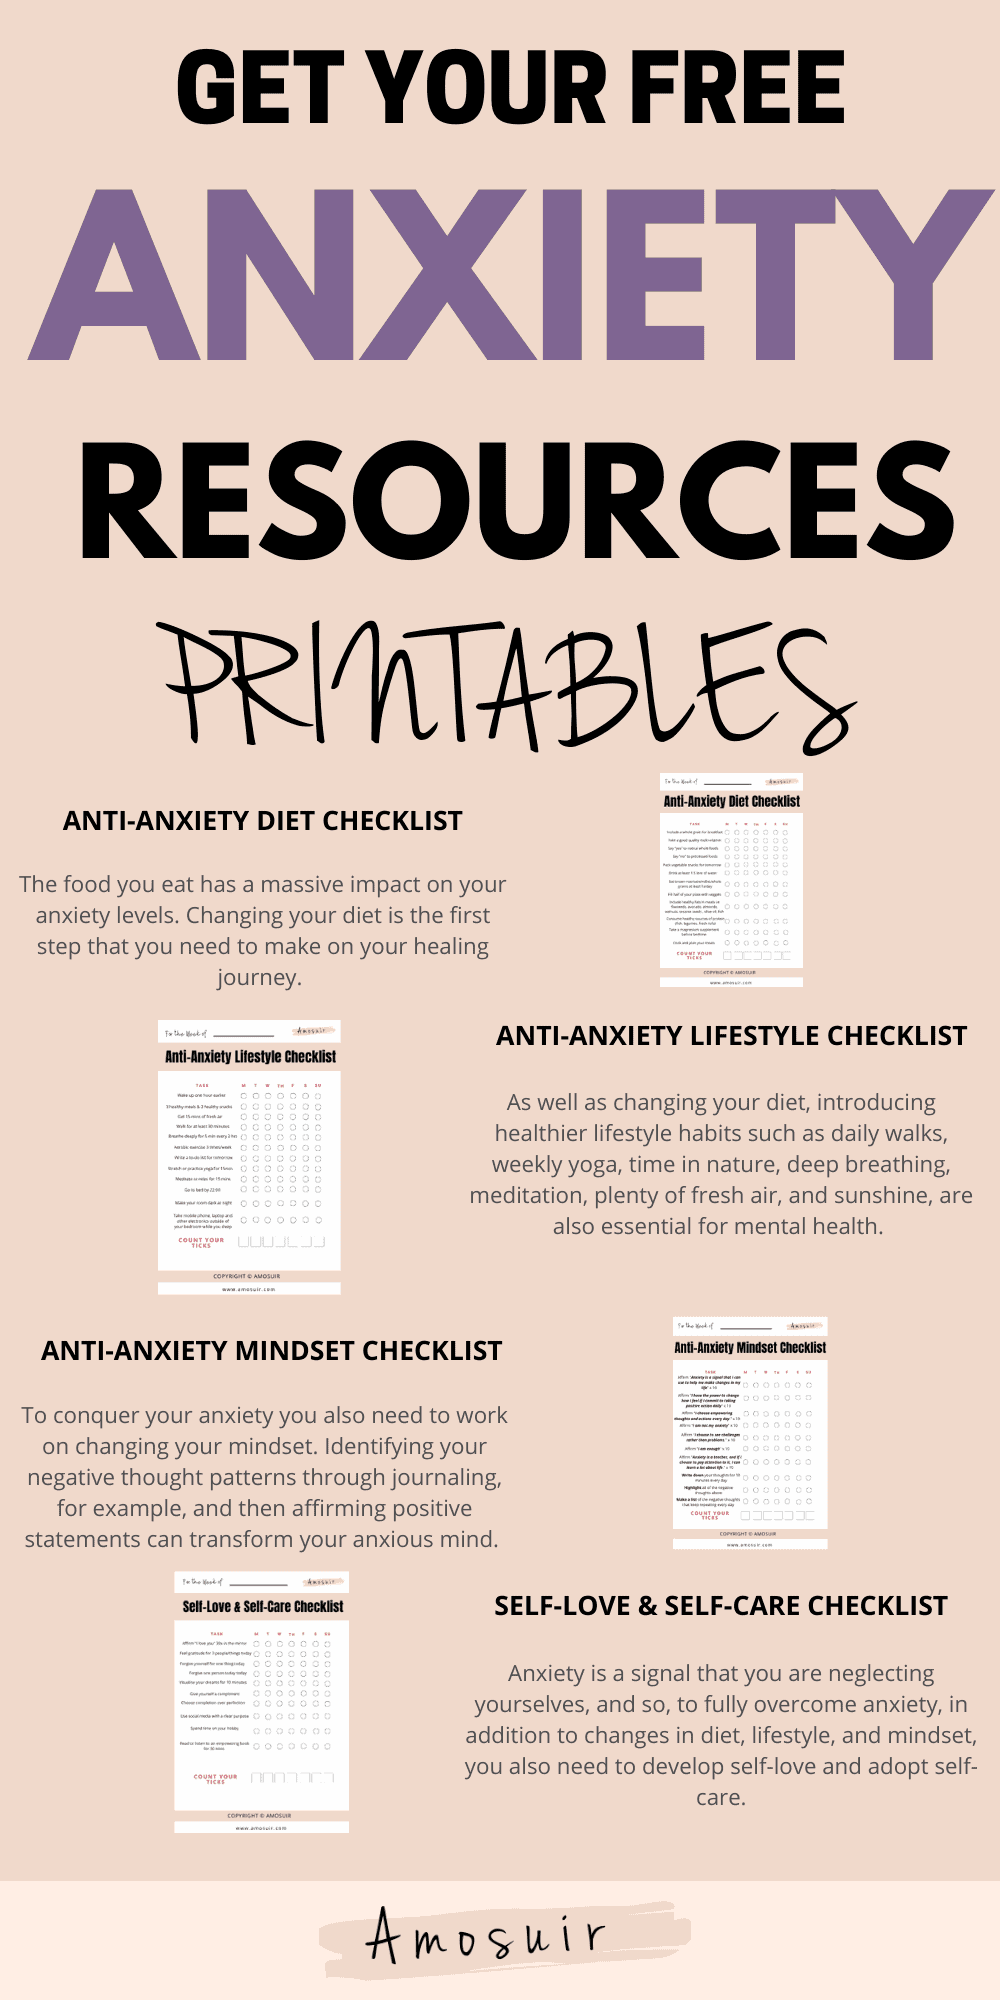 free anxiety resources infographic